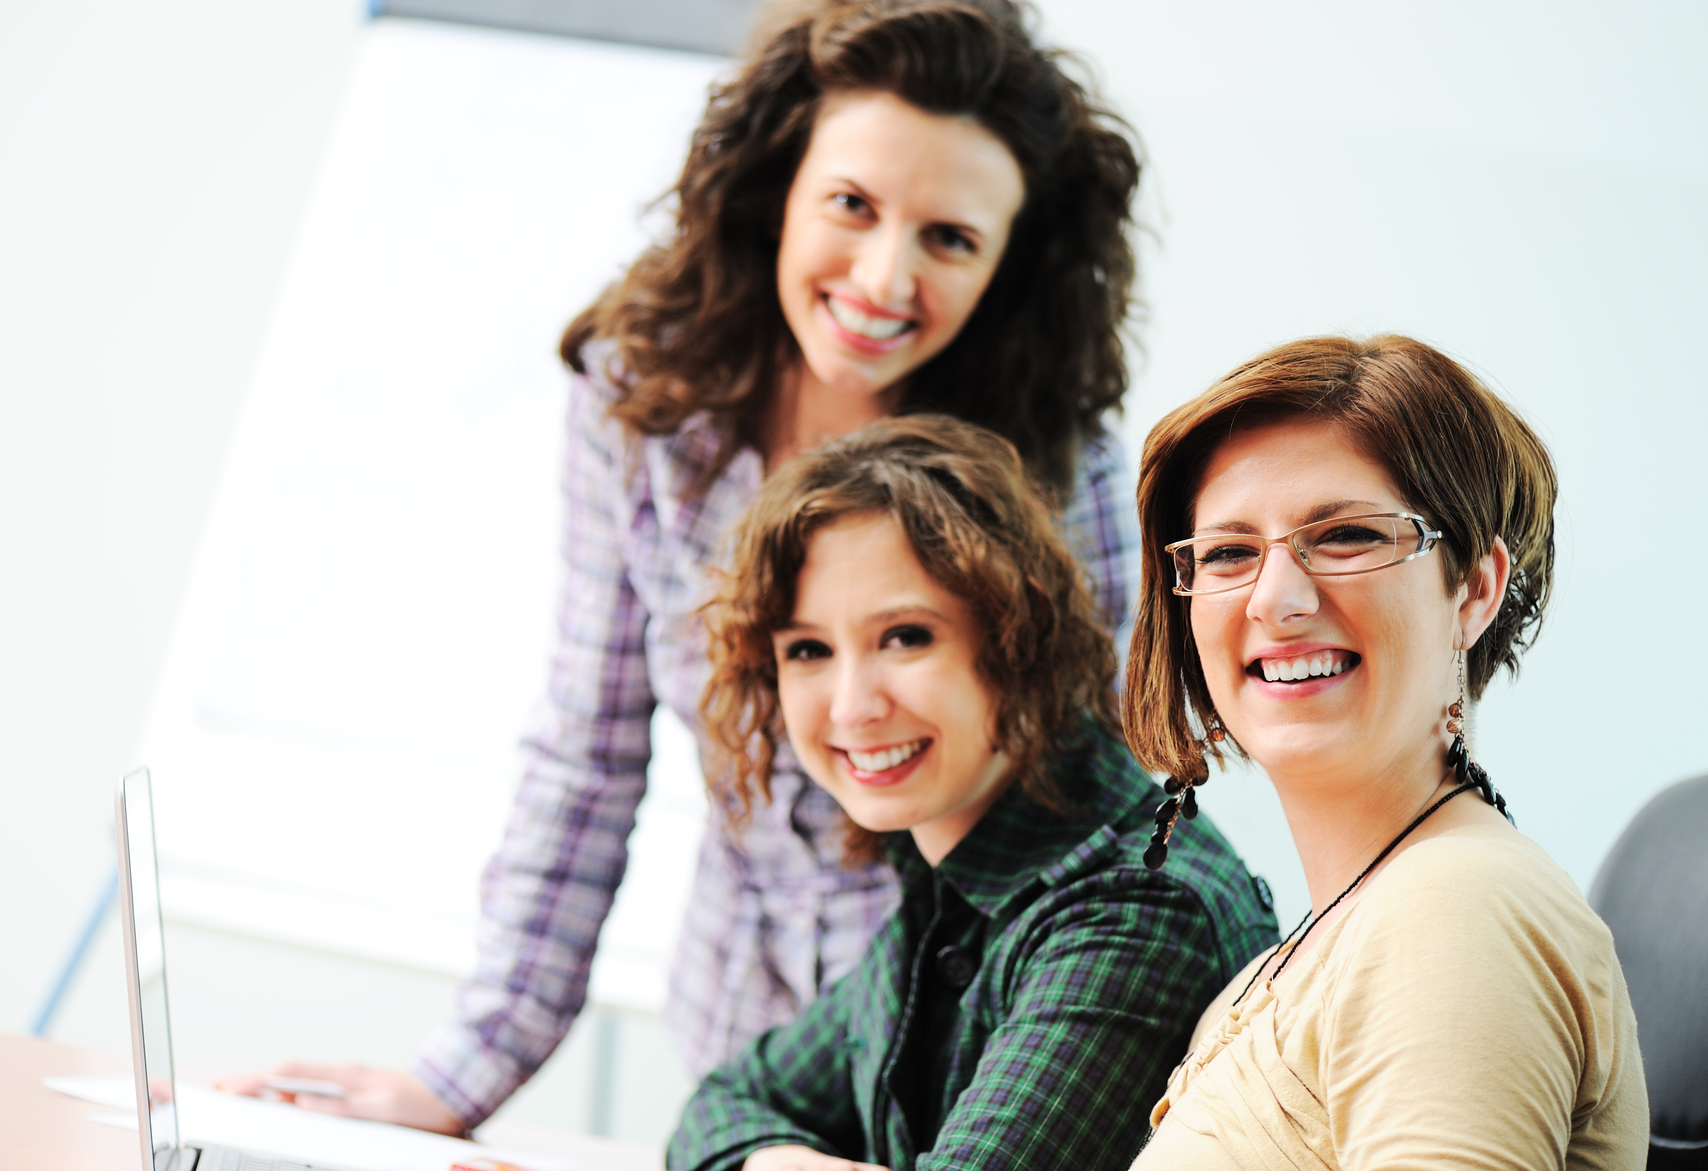 stockfresh_1152357_while-meeting-group-of-young-women-working-together-on-the-table_sizeM_169e72.jpg